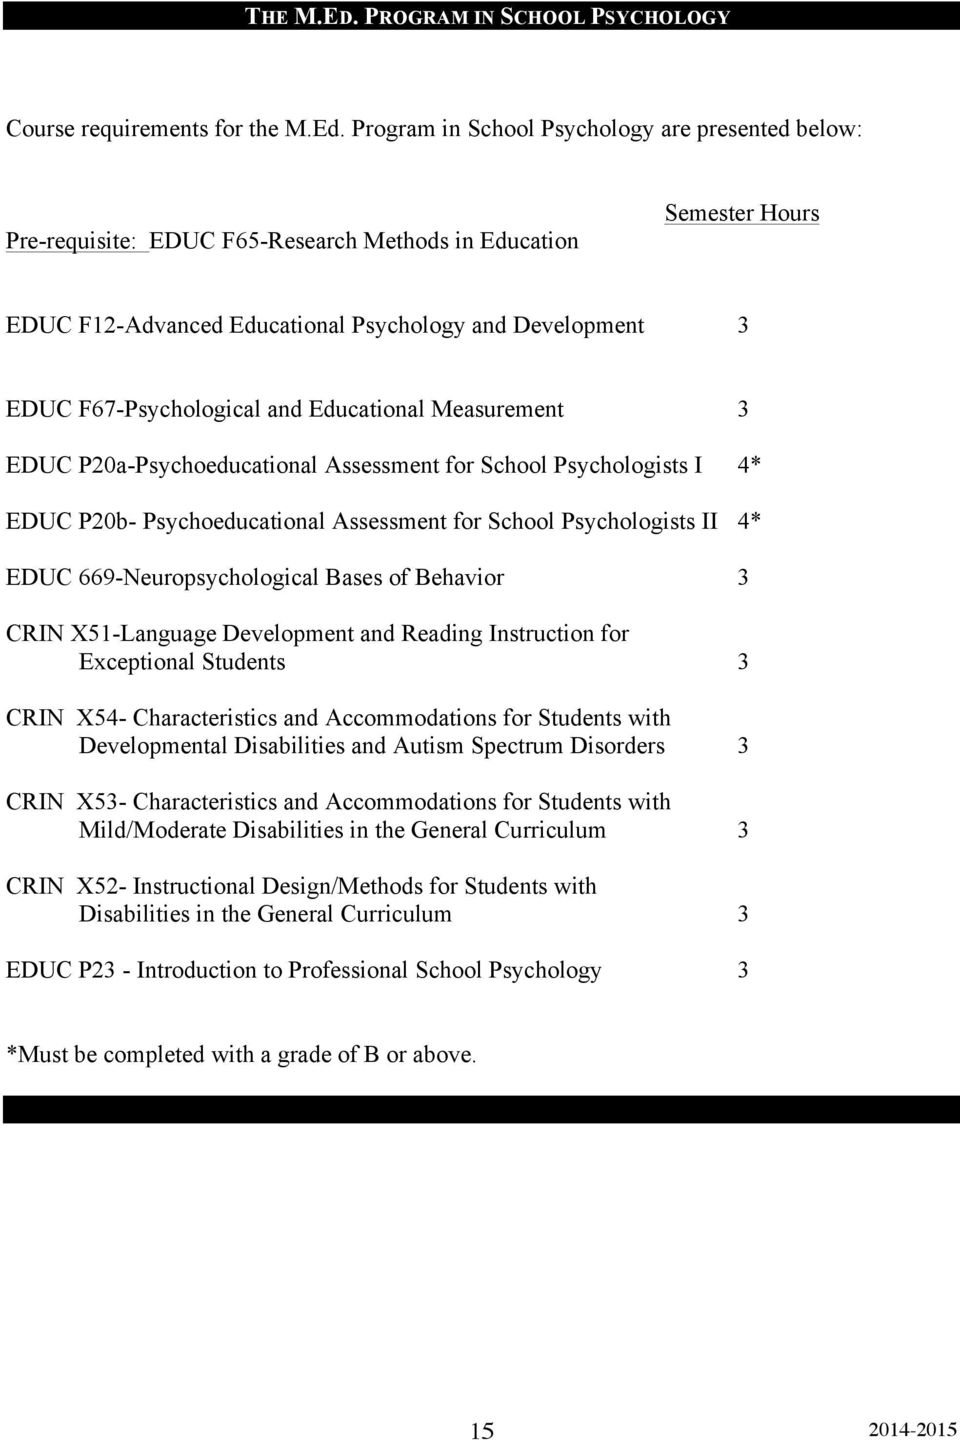 F67-Psychological and Educational Measurement 3 EDUC P20a-Psychoeducational Assessment for School Psychologists I 4* EDUC P20b- Psychoeducational Assessment for School Psychologists II 4* EDUC